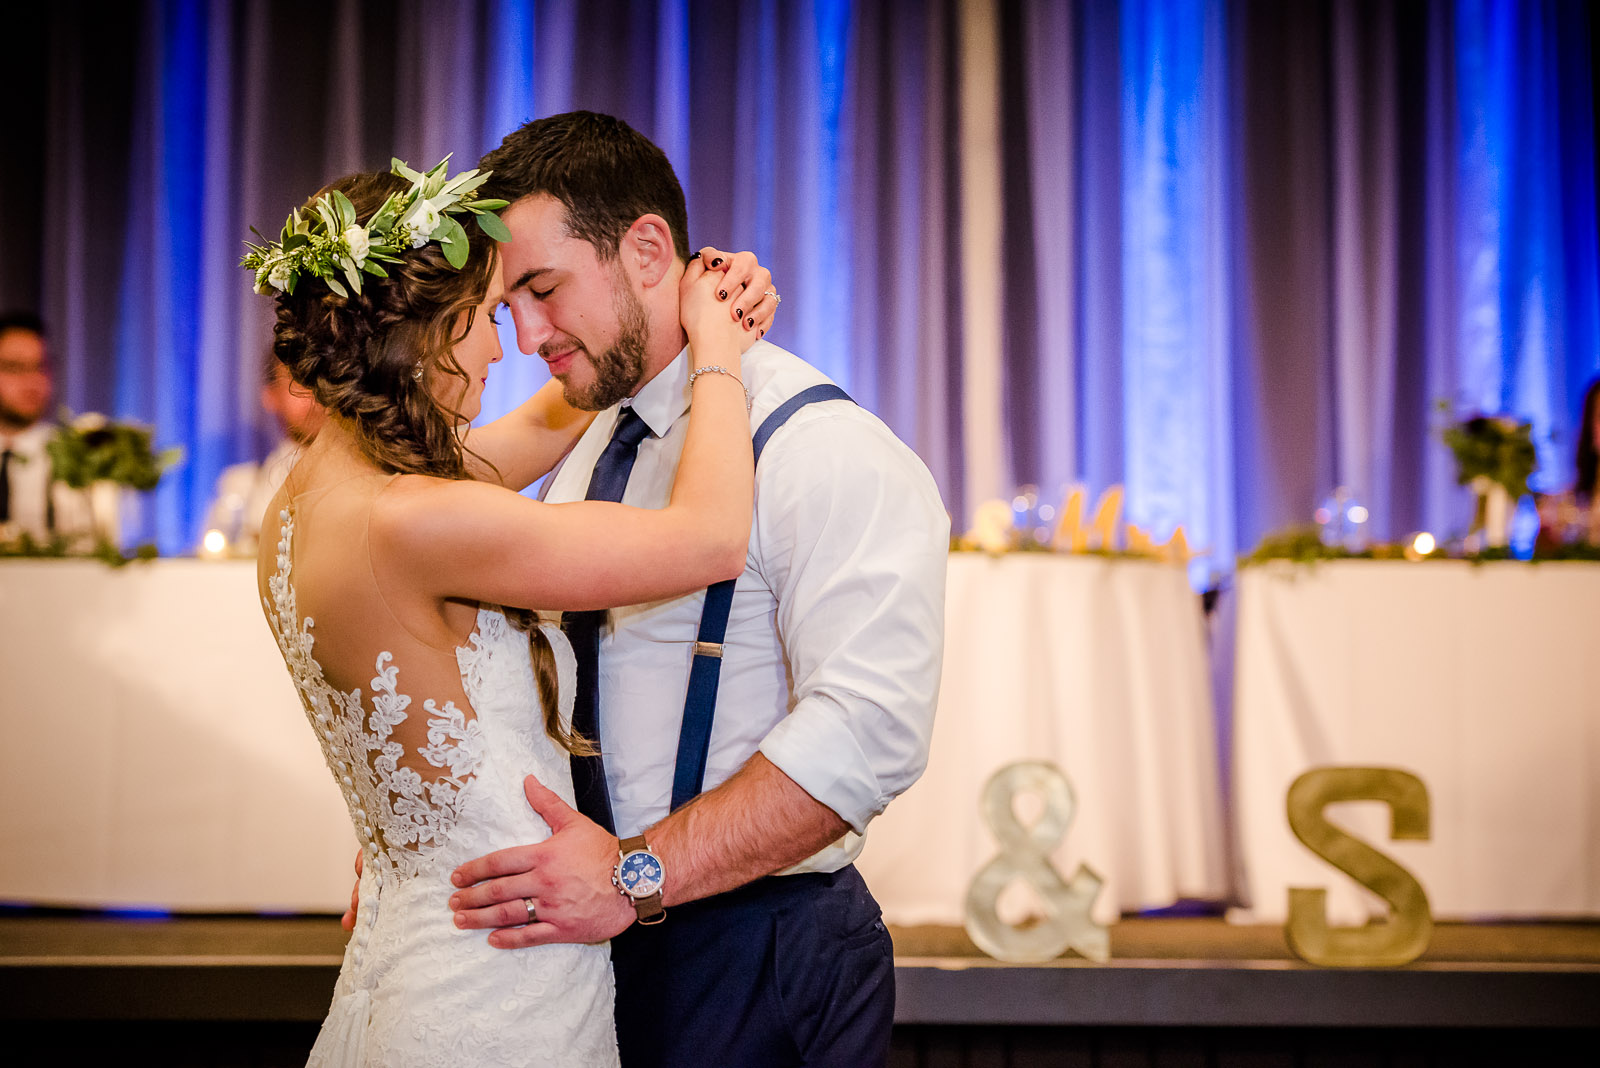 Eric_and_Christy_Photography_Blog_2018_Wed_moments-1